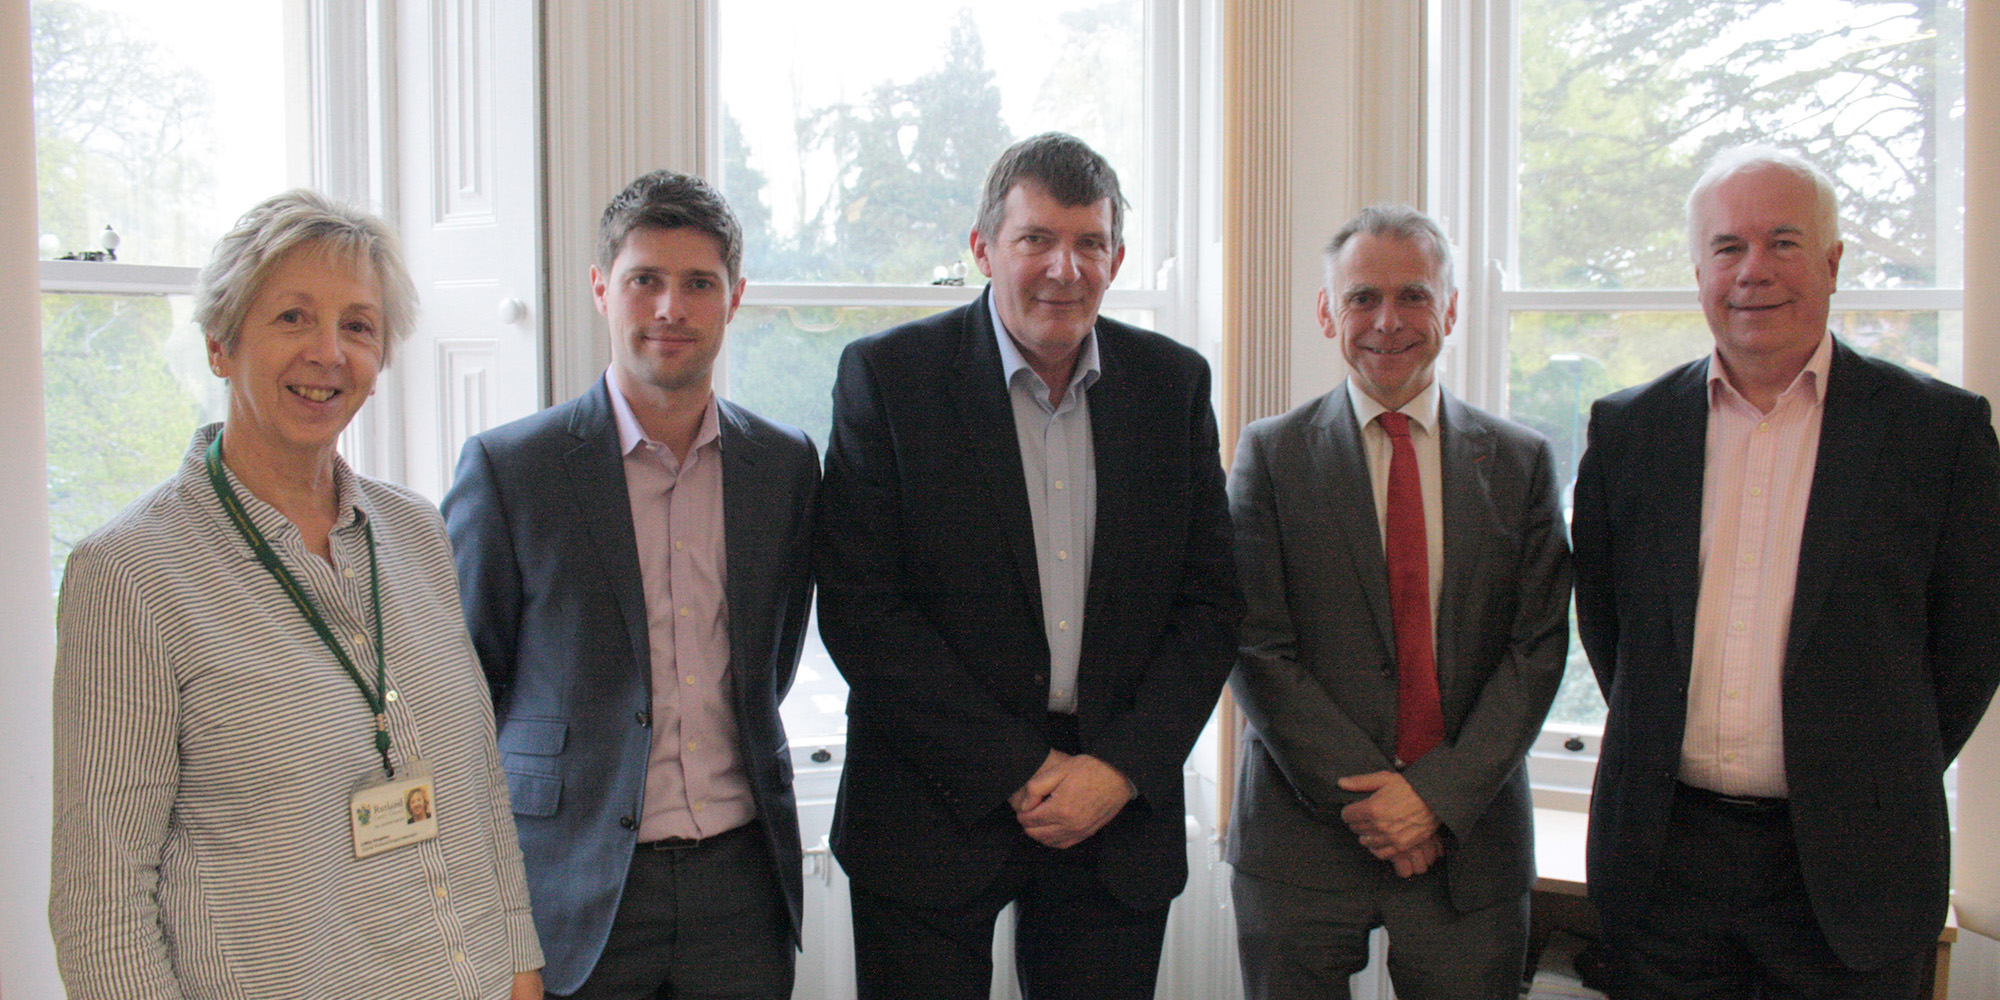 Council Leader Oliver Hemsley with representatives from EE and BT